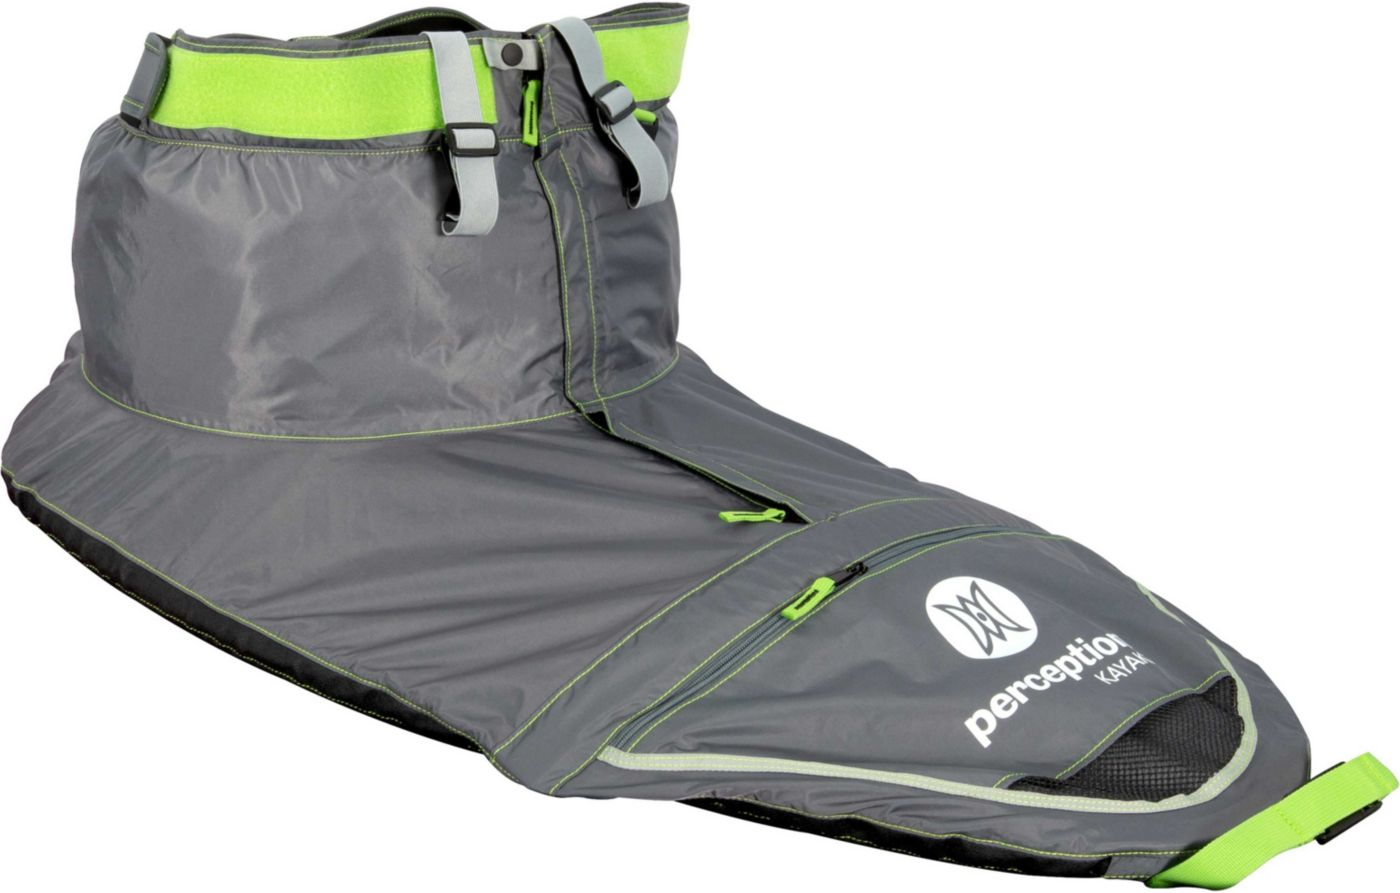 Perception TrueFit Kayak Spray Skirt